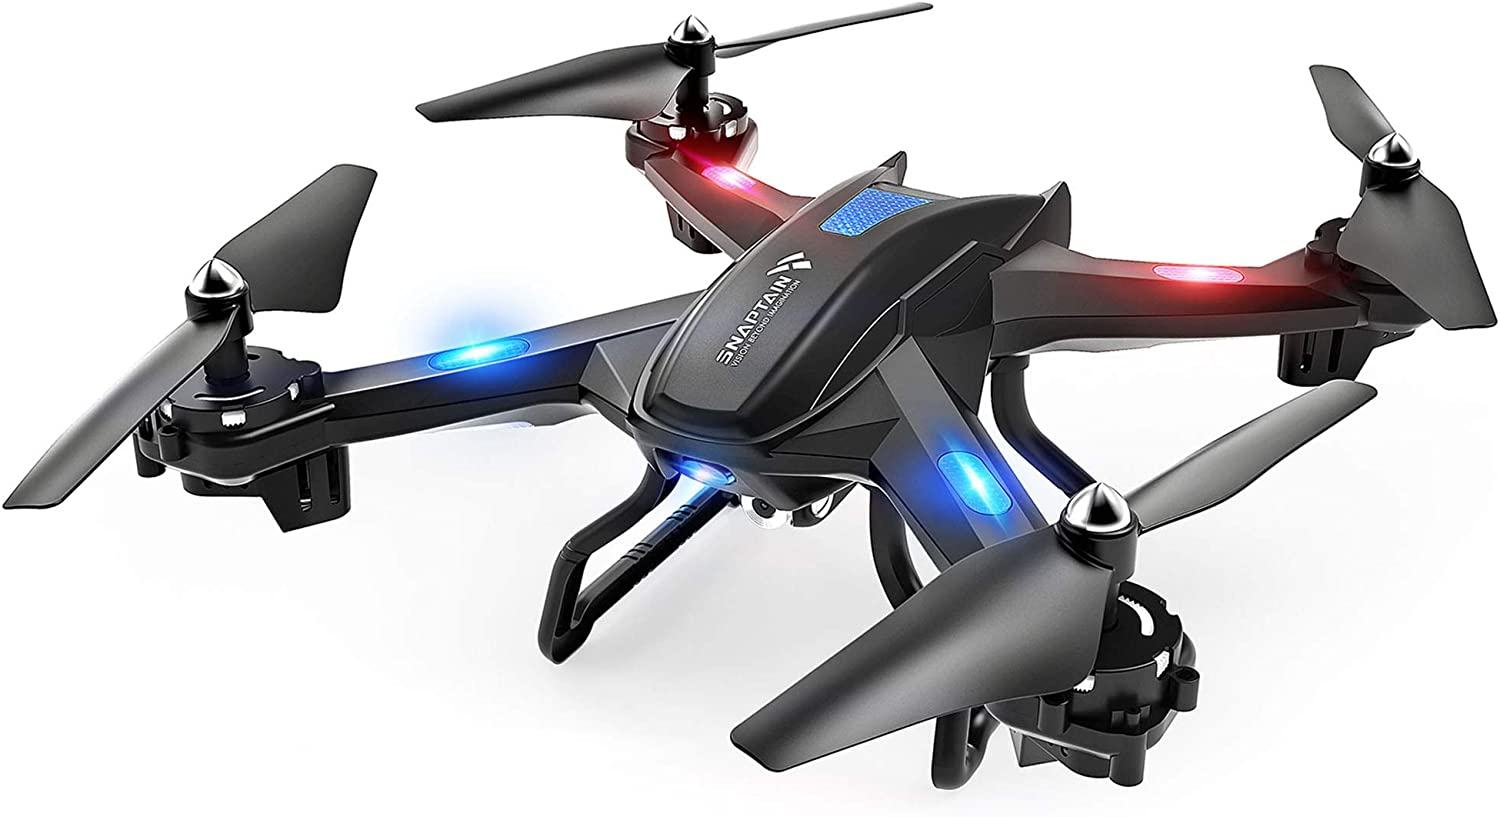 Gravity Sensor Function SNAPTAIN S5C WiFi FPV Drone with 1080P HD Camera Voice Control Live Video RC Quadcopter with Altitude Hold